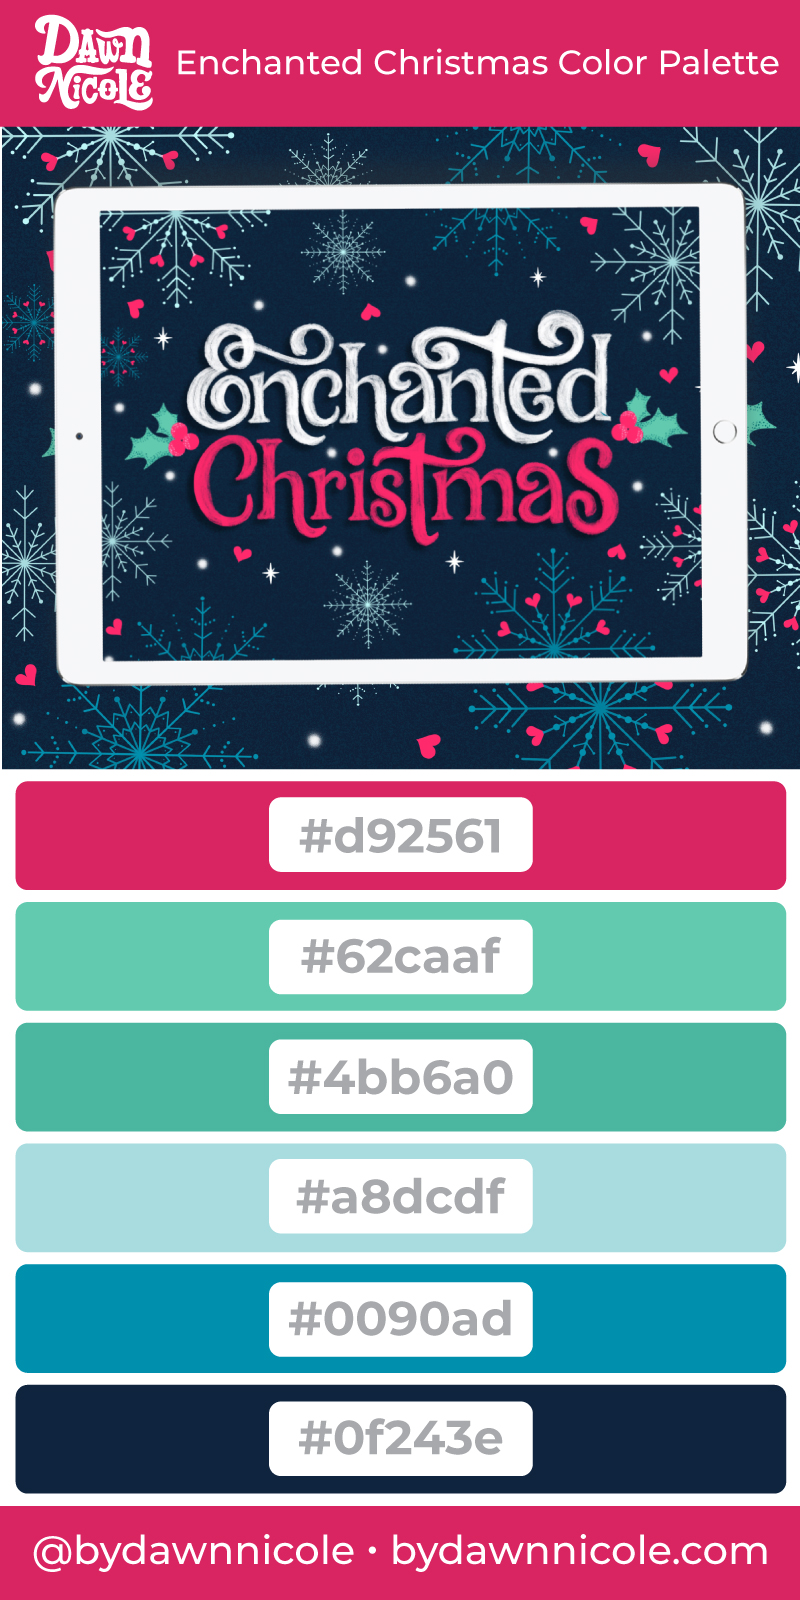 Enchanted Christmas Color Palette. Grab the free color palette I used to create this festive hand-lettered artwork in the Procreate app!